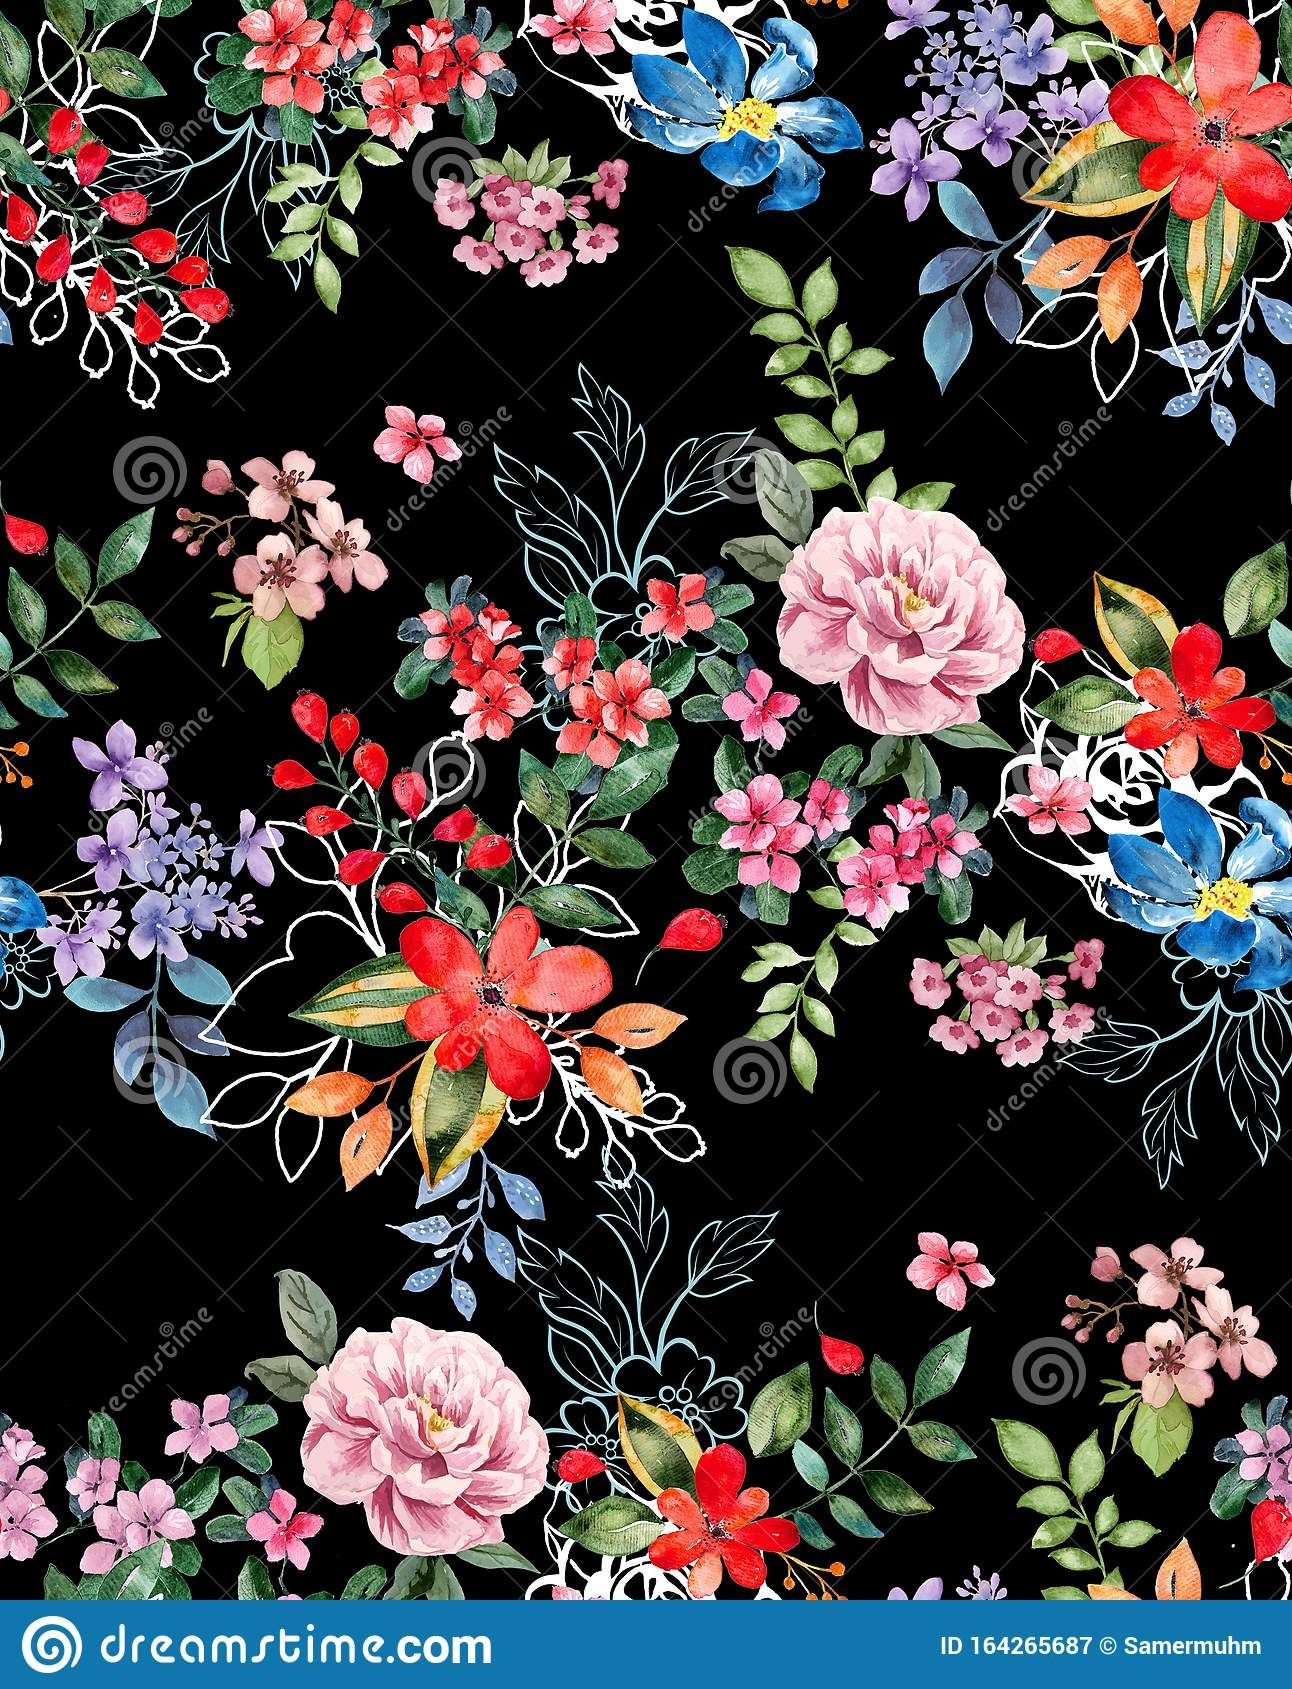 Seamless Watercolor Floral Design With Black Background For